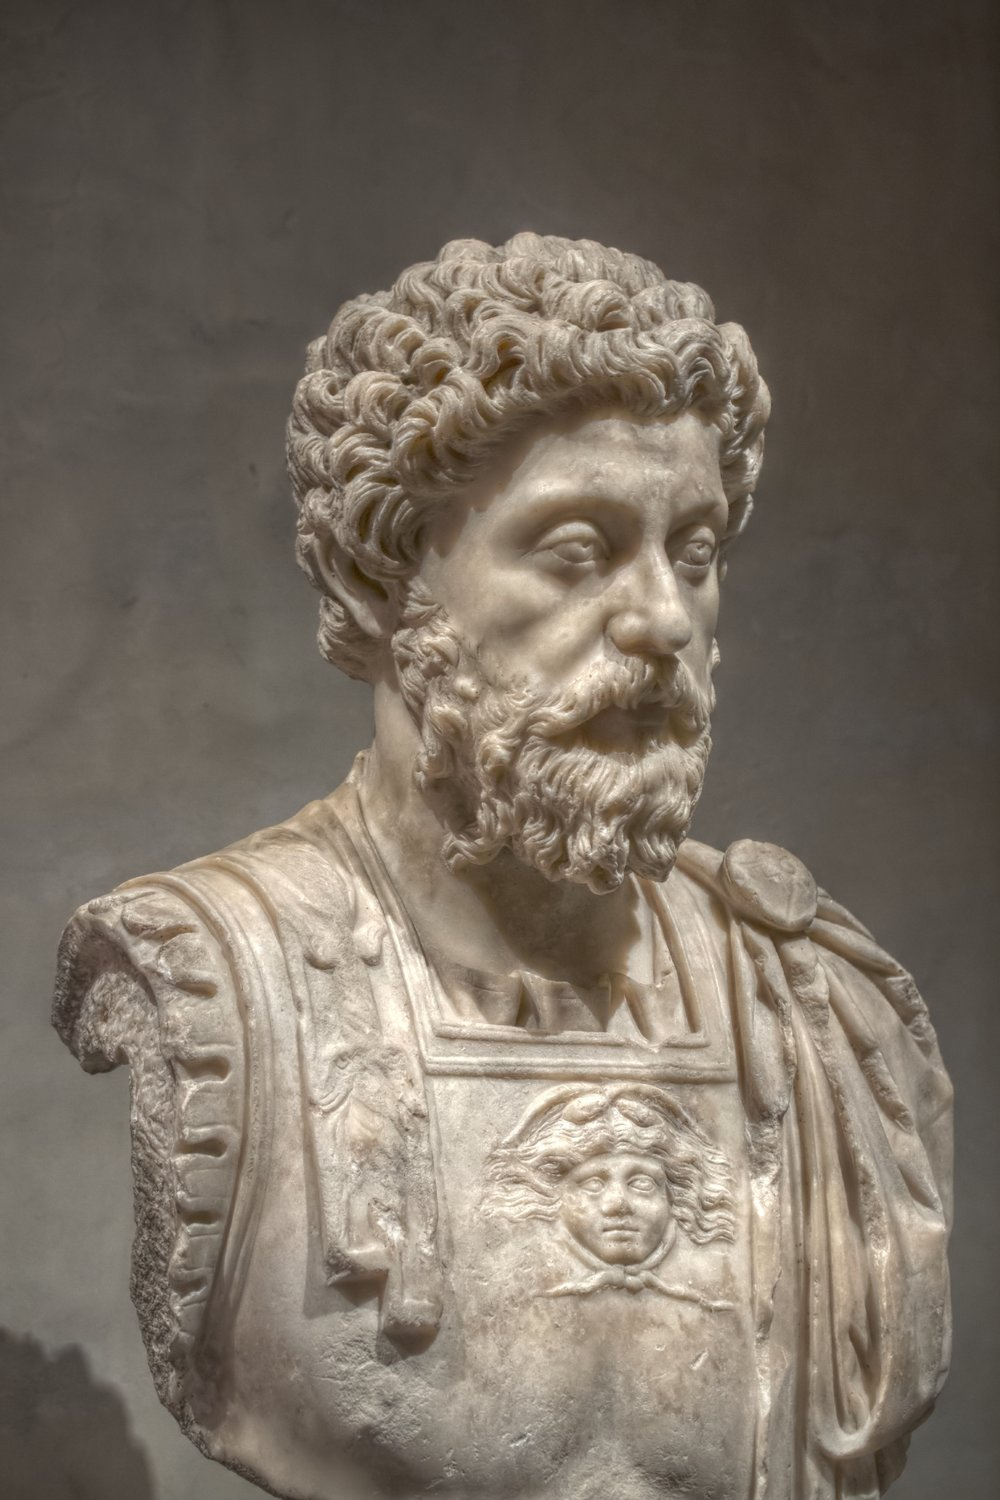 Bust of Marcus Aurelius  By Pierre-Selim - Self-photographed, CC BY-SA 3.0, https://commons.wikimedia.org/w/index.php?curid=18101954